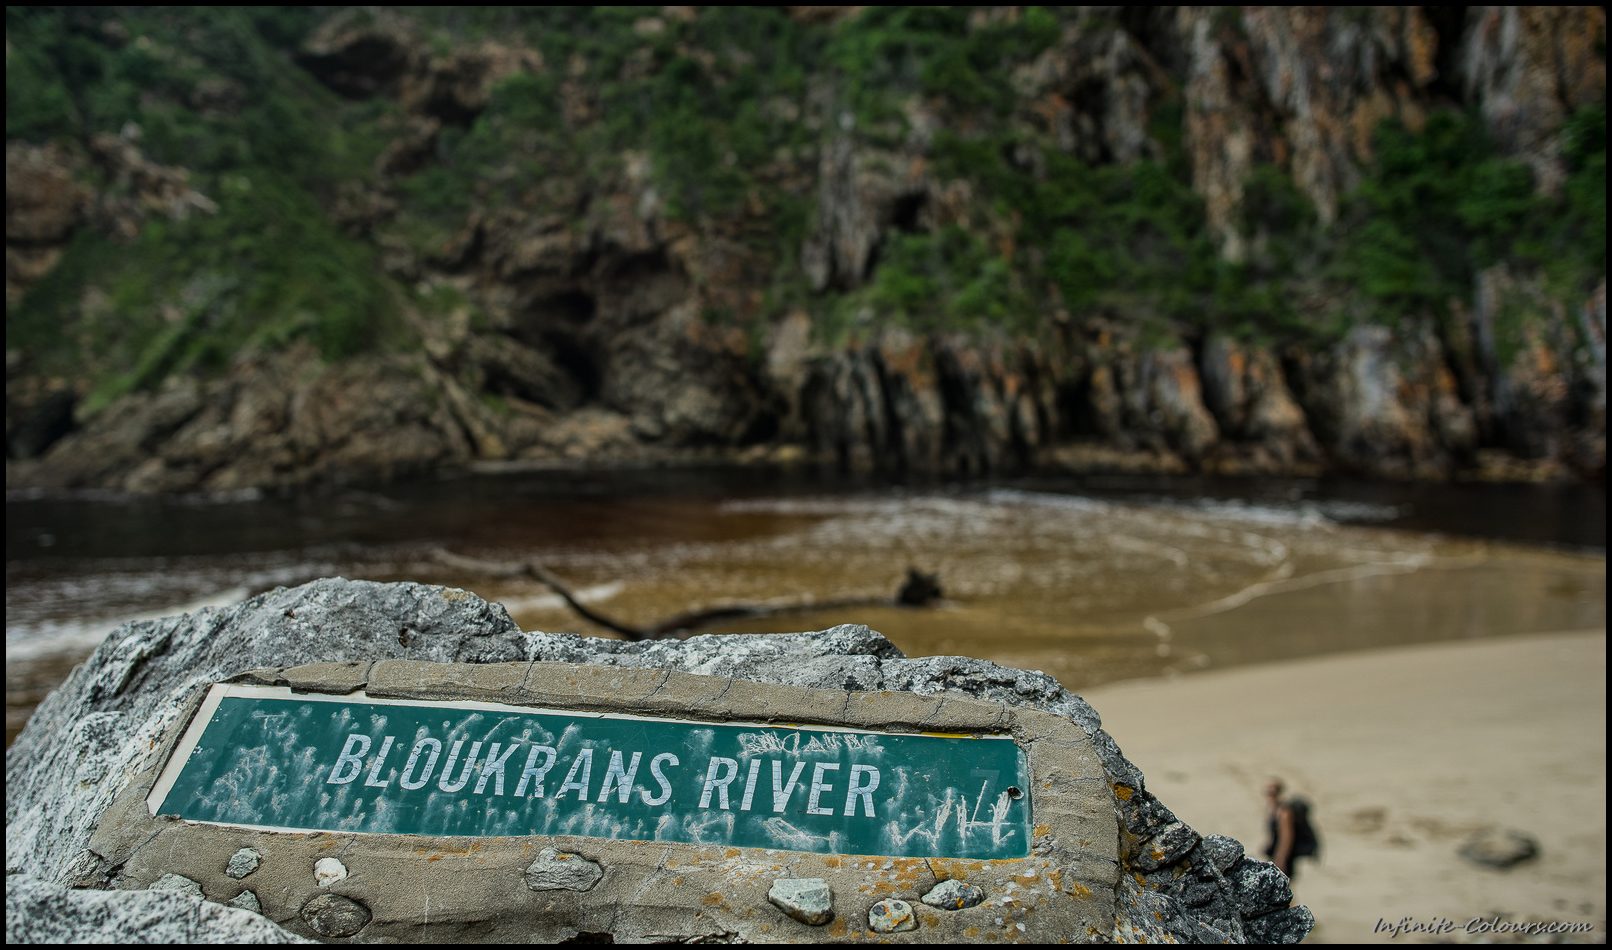 Battle-scared Bloukrans River sign